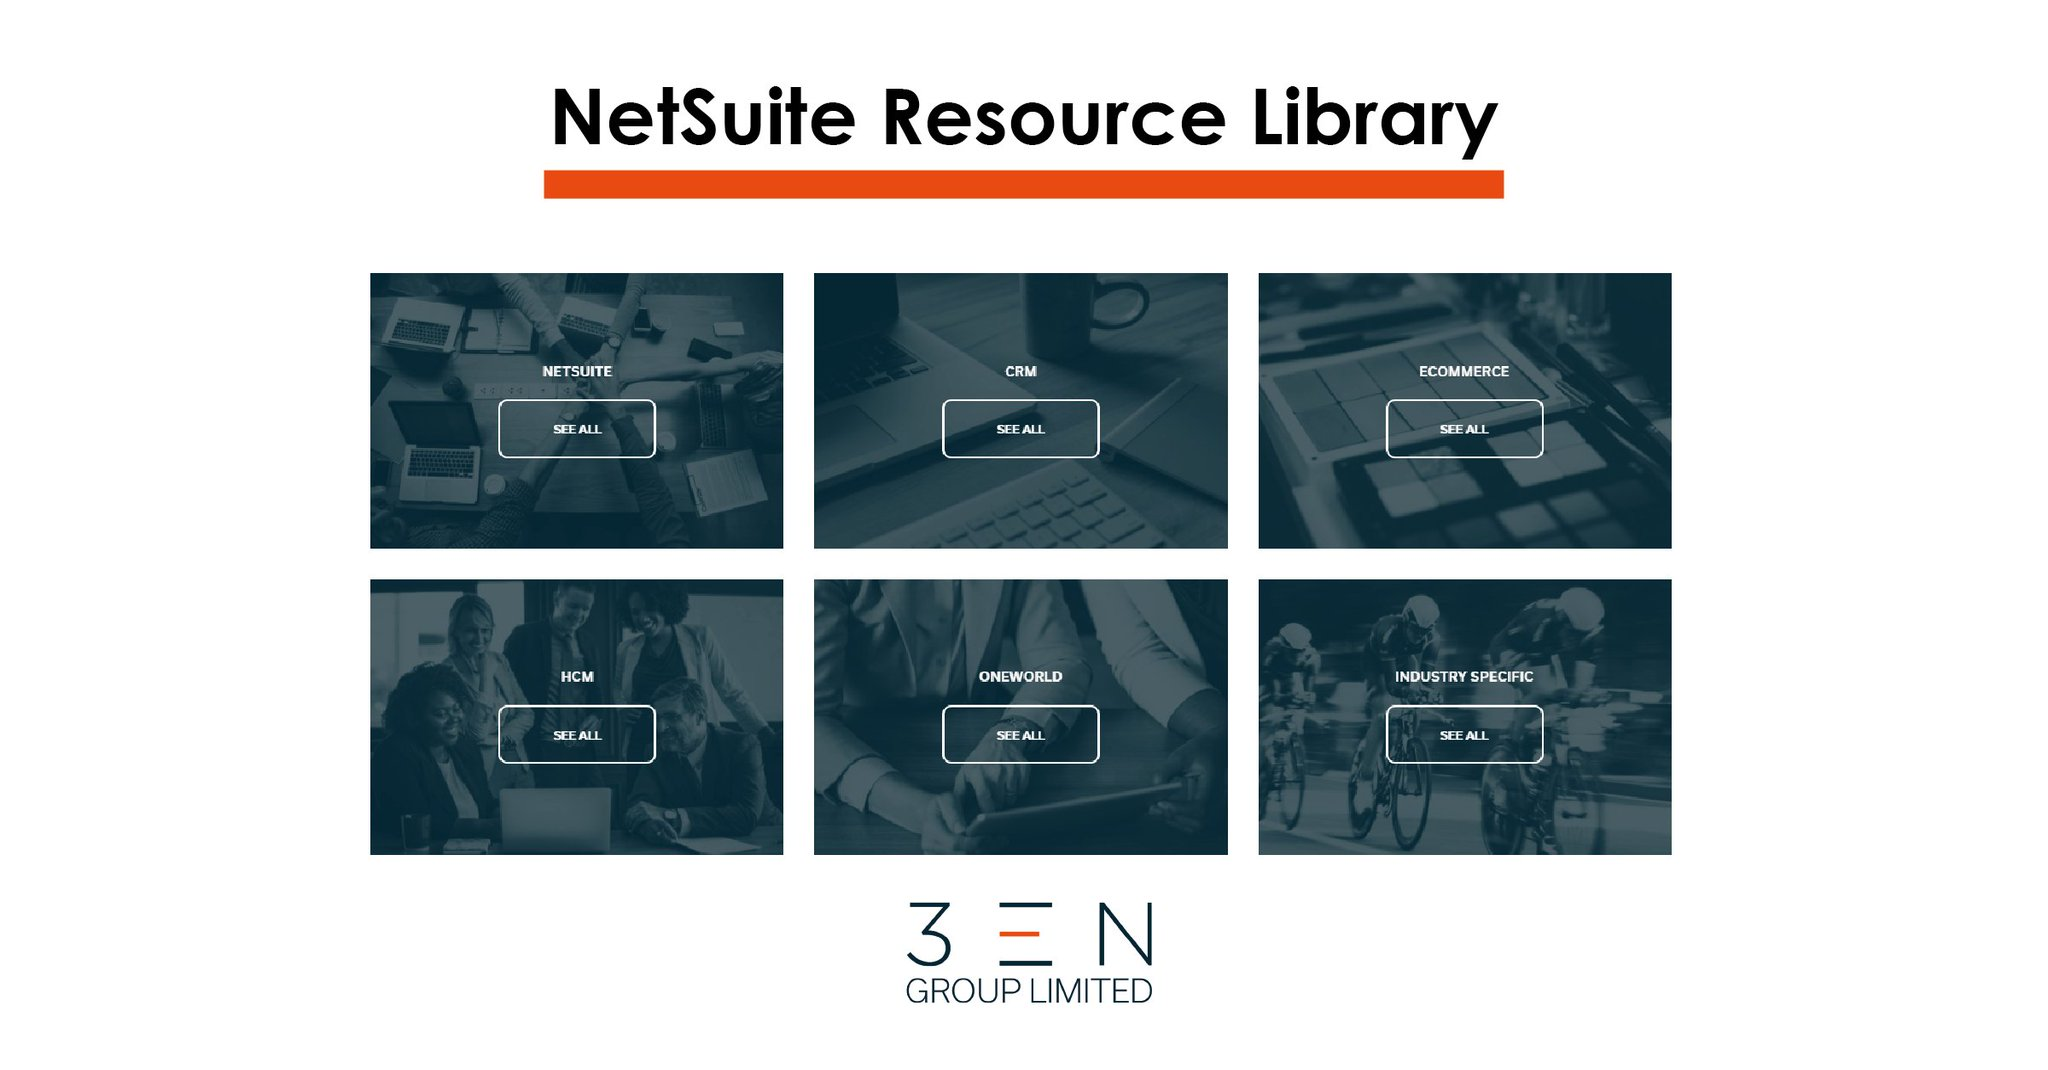 Did you know we offer a NetSuite resource library on our website, where you can avail of resources including data sheets on various NetSuite elements such as CRM, Ecommerce & OneWorld. ☁️  #netsuite #resources #oracle #cloud https://t.co/jNtsIdr8sN